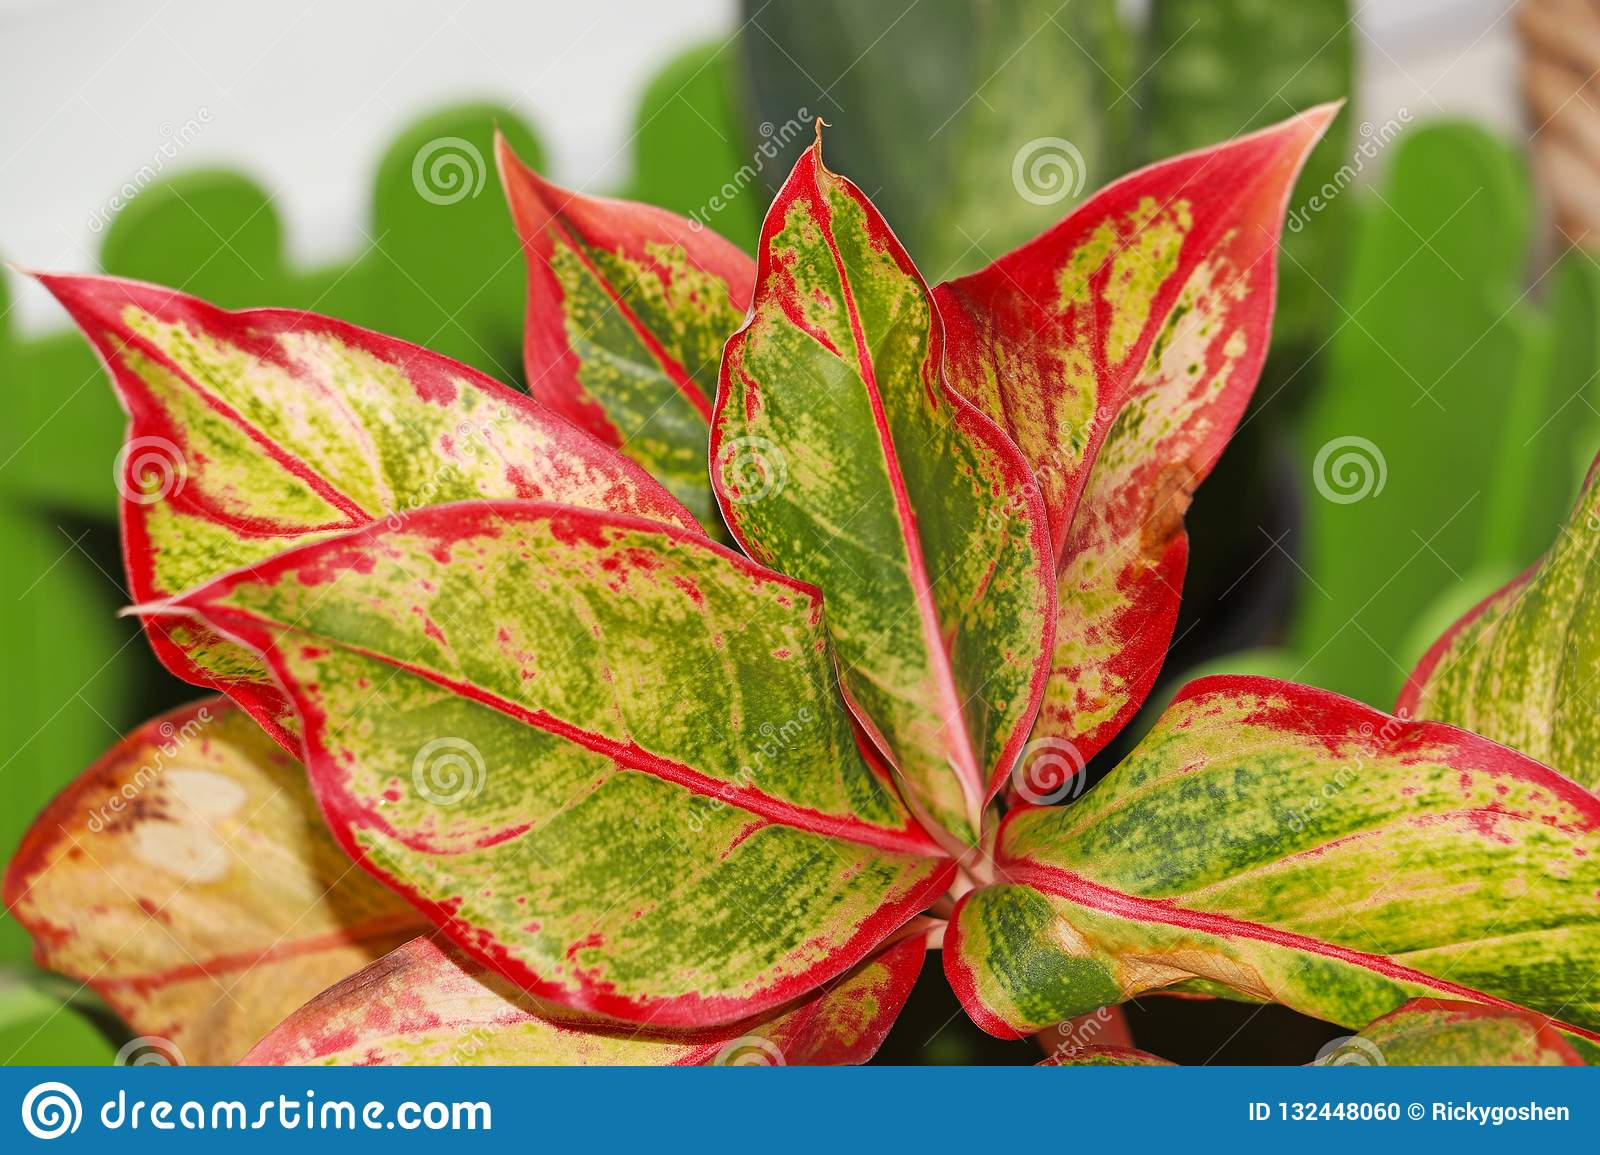 Beautiful colored leaves in a house plant